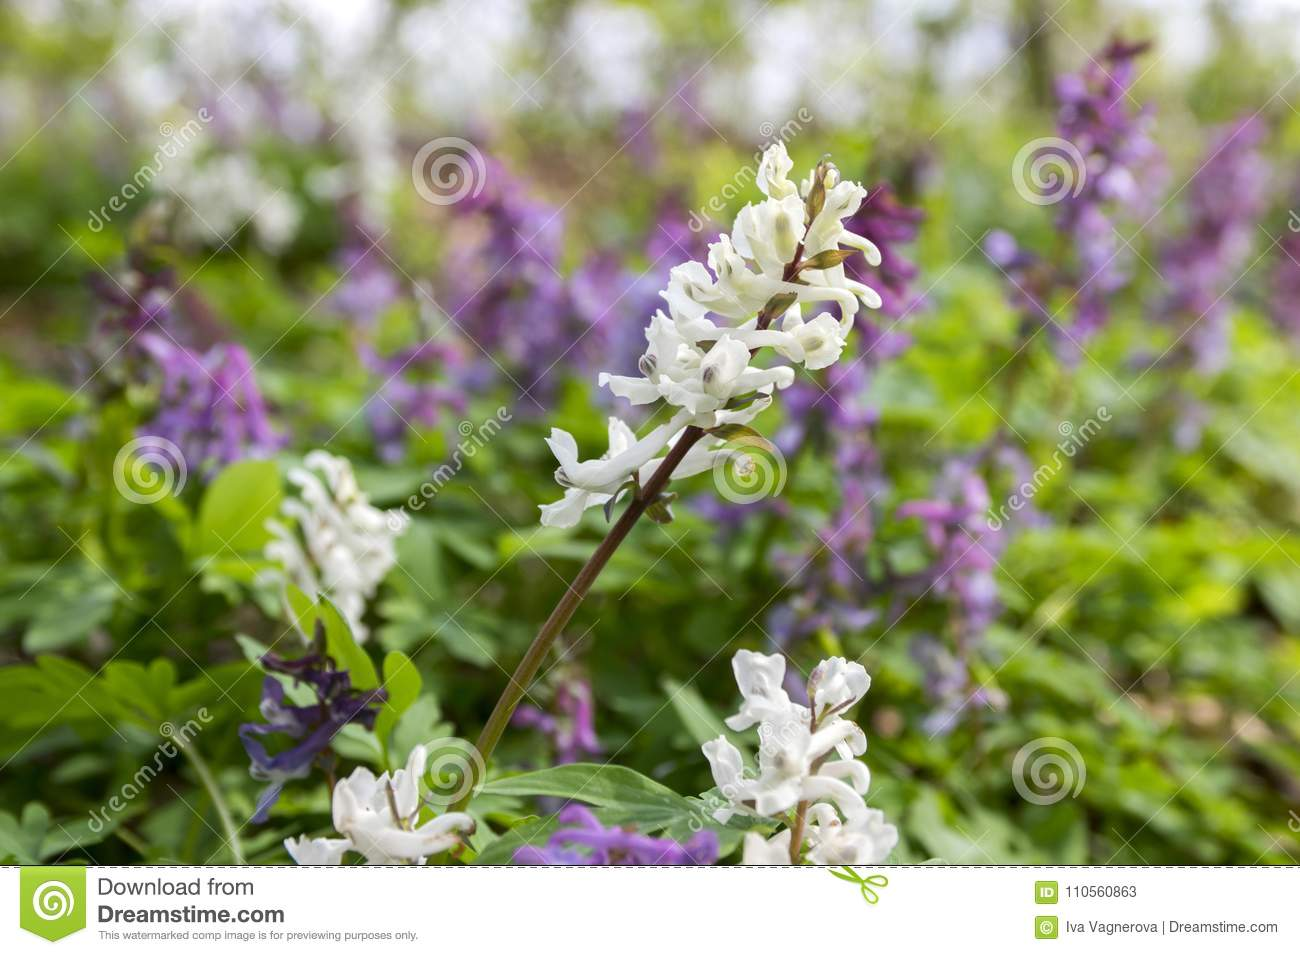 Corydalis Cava White And Purple Spring Flowers In Bloom Stock Image